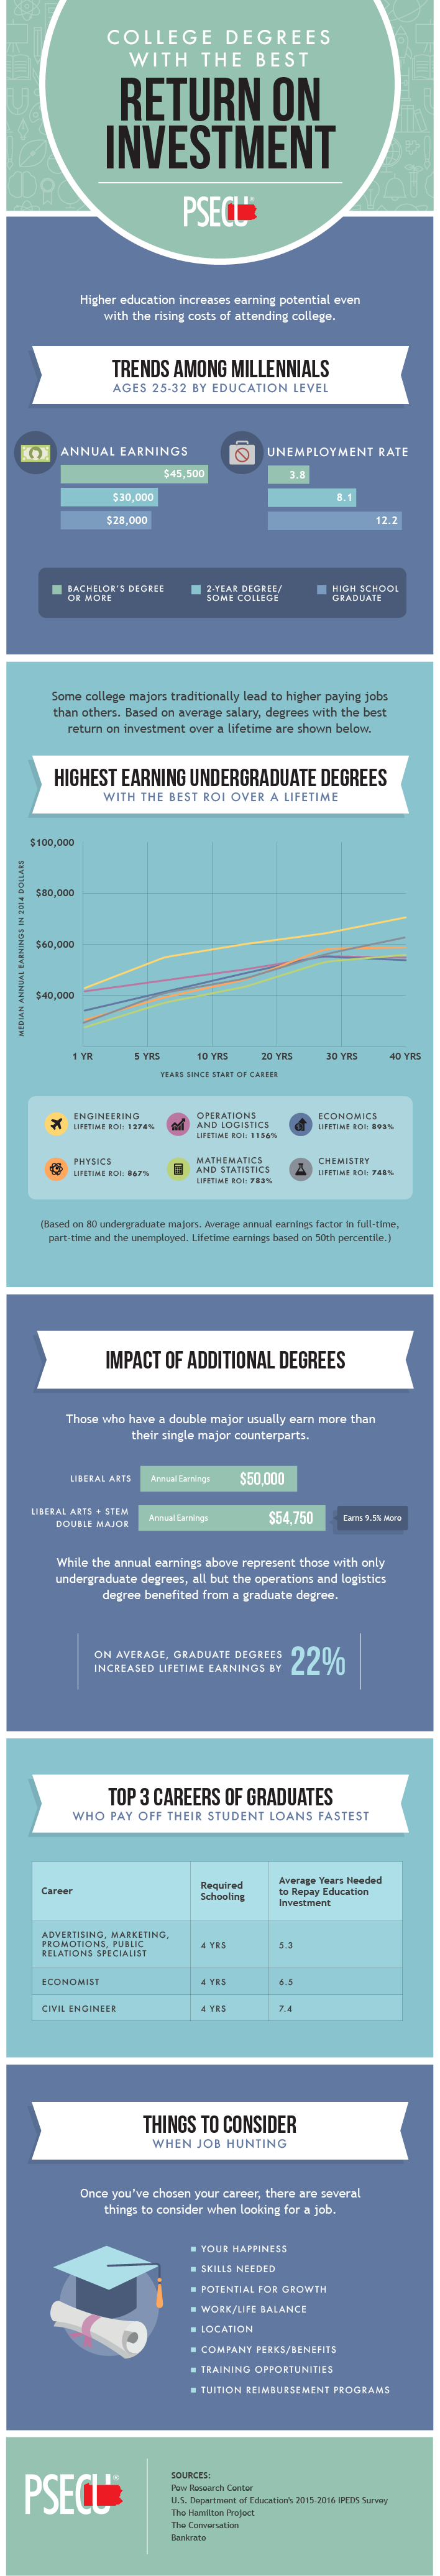 College Degrees with the Highest ROI